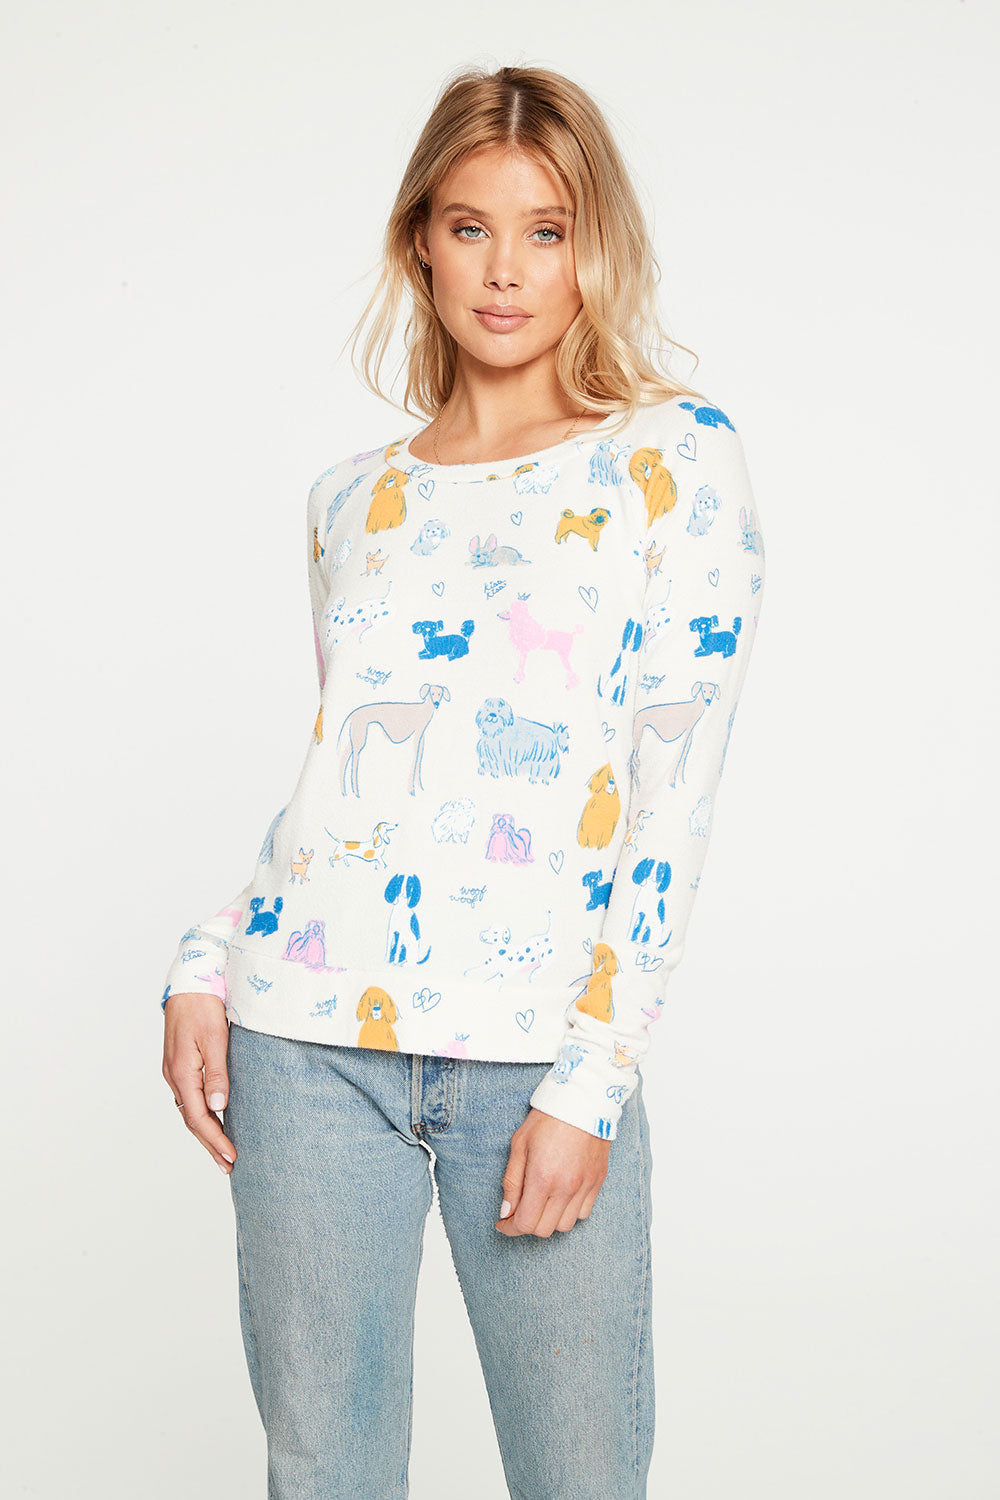 All Over Dog Charity Sweatshirt WOMENS chaserbrand4.myshopify.com